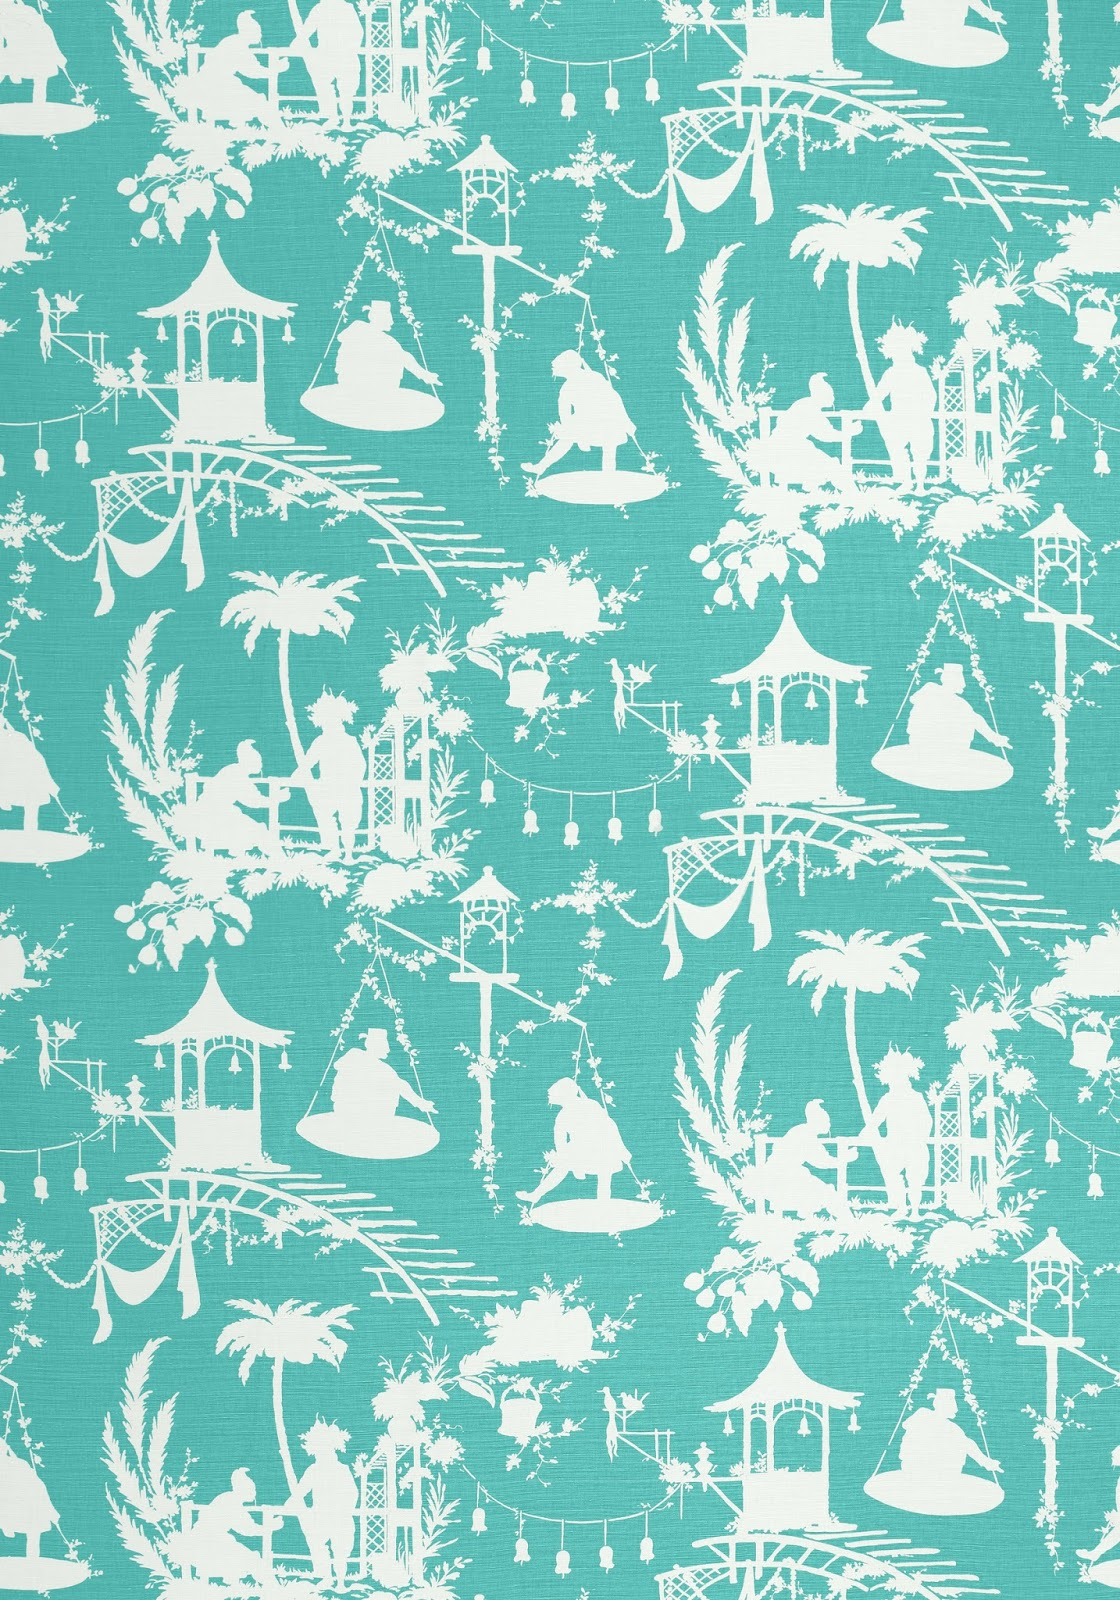 fabric in turquoise fabric in pink fabric in green fabric 1120x1600